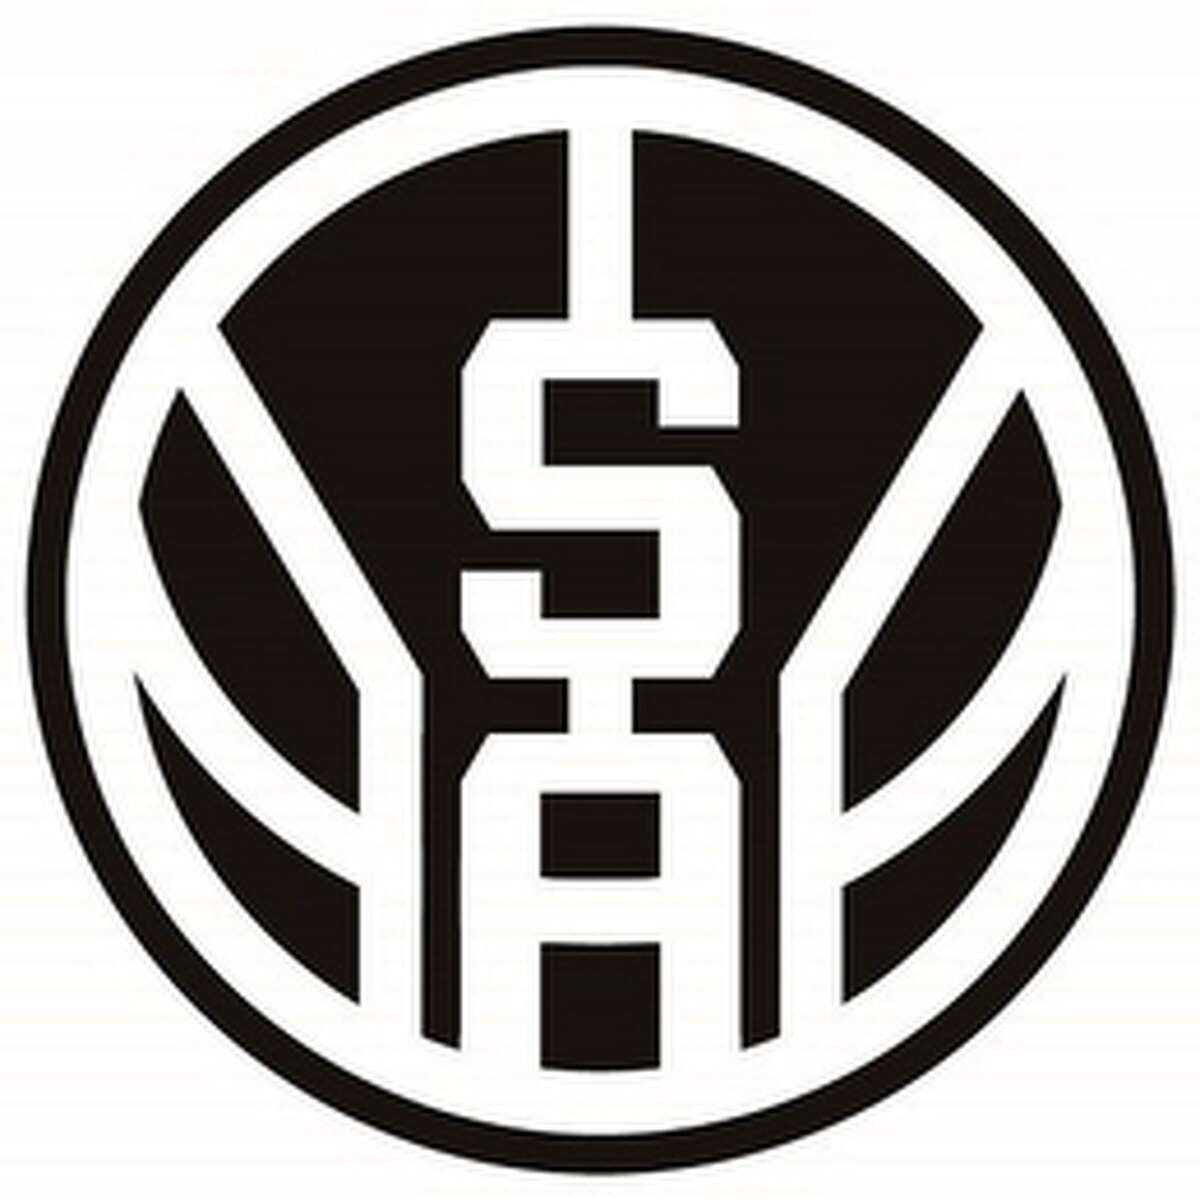 San Antonio Spurs, LLC filed multiple trademark applications on June 7 for a new black and white logo featuring a basketball design with the letters